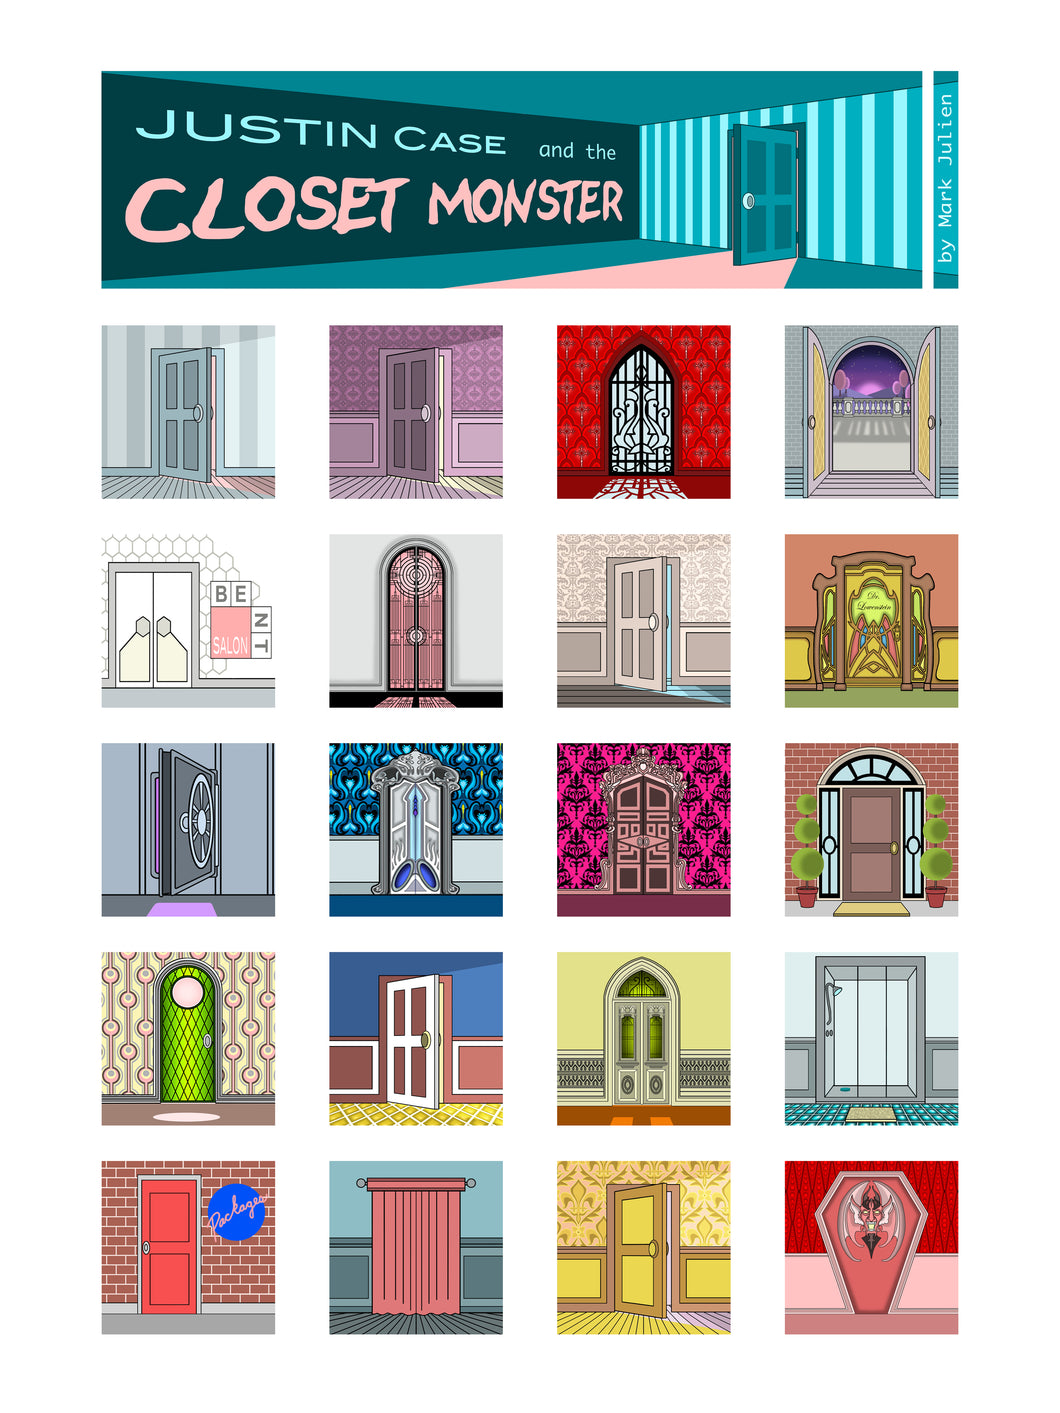 The Doors of Justin Case and the Closet Monster (Poster)